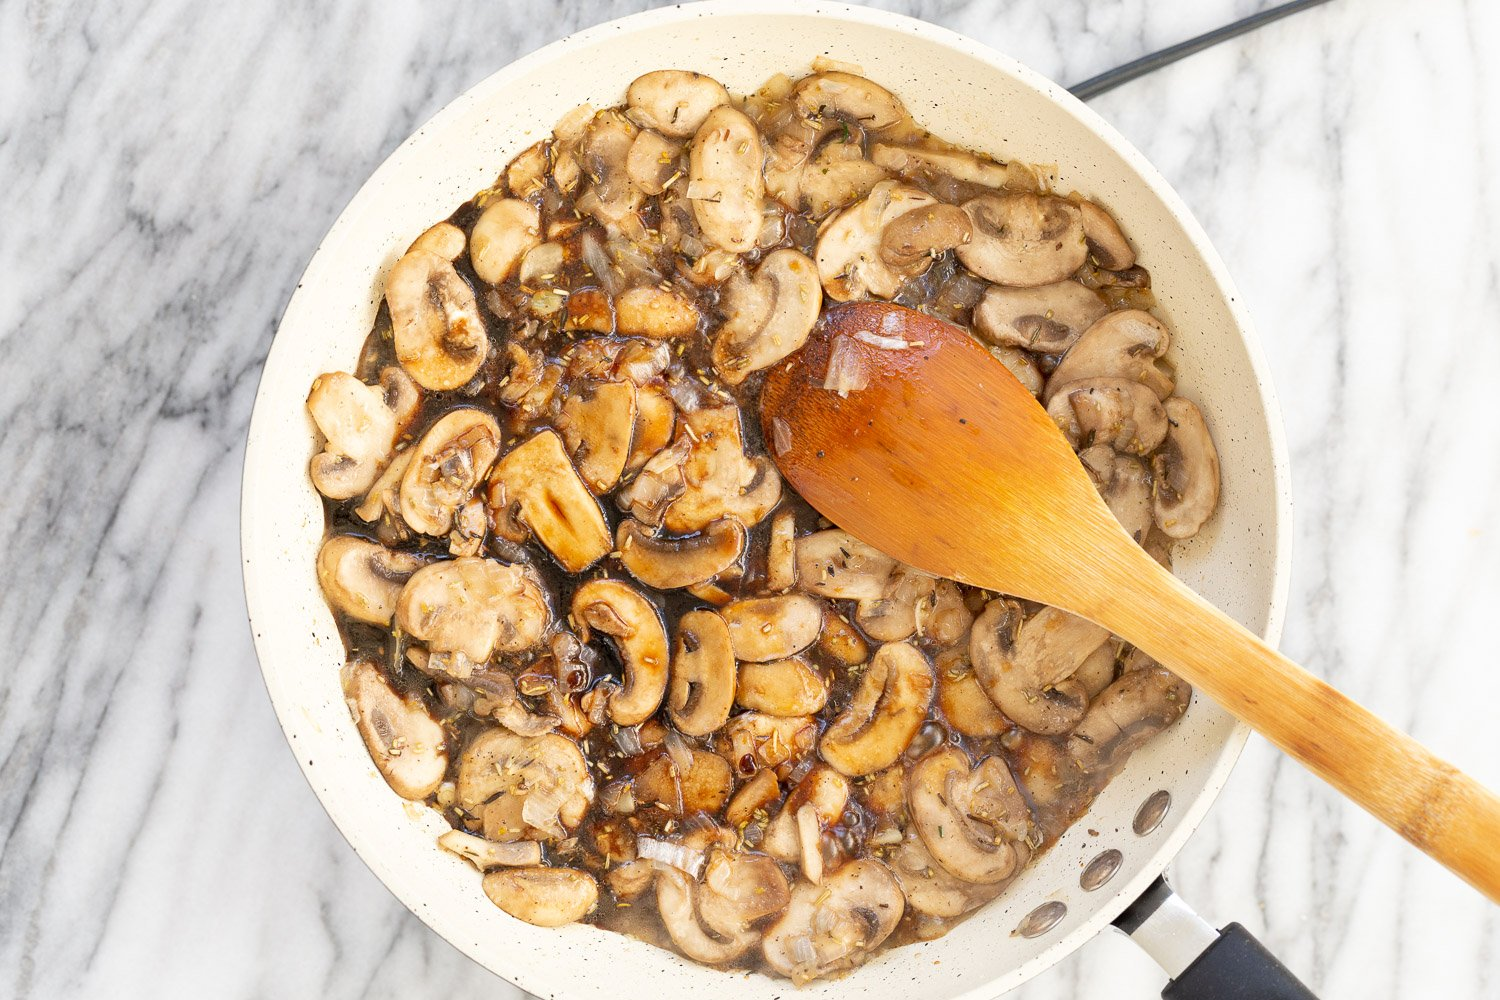 Mushrooms with sauces and herbs in a white skillet